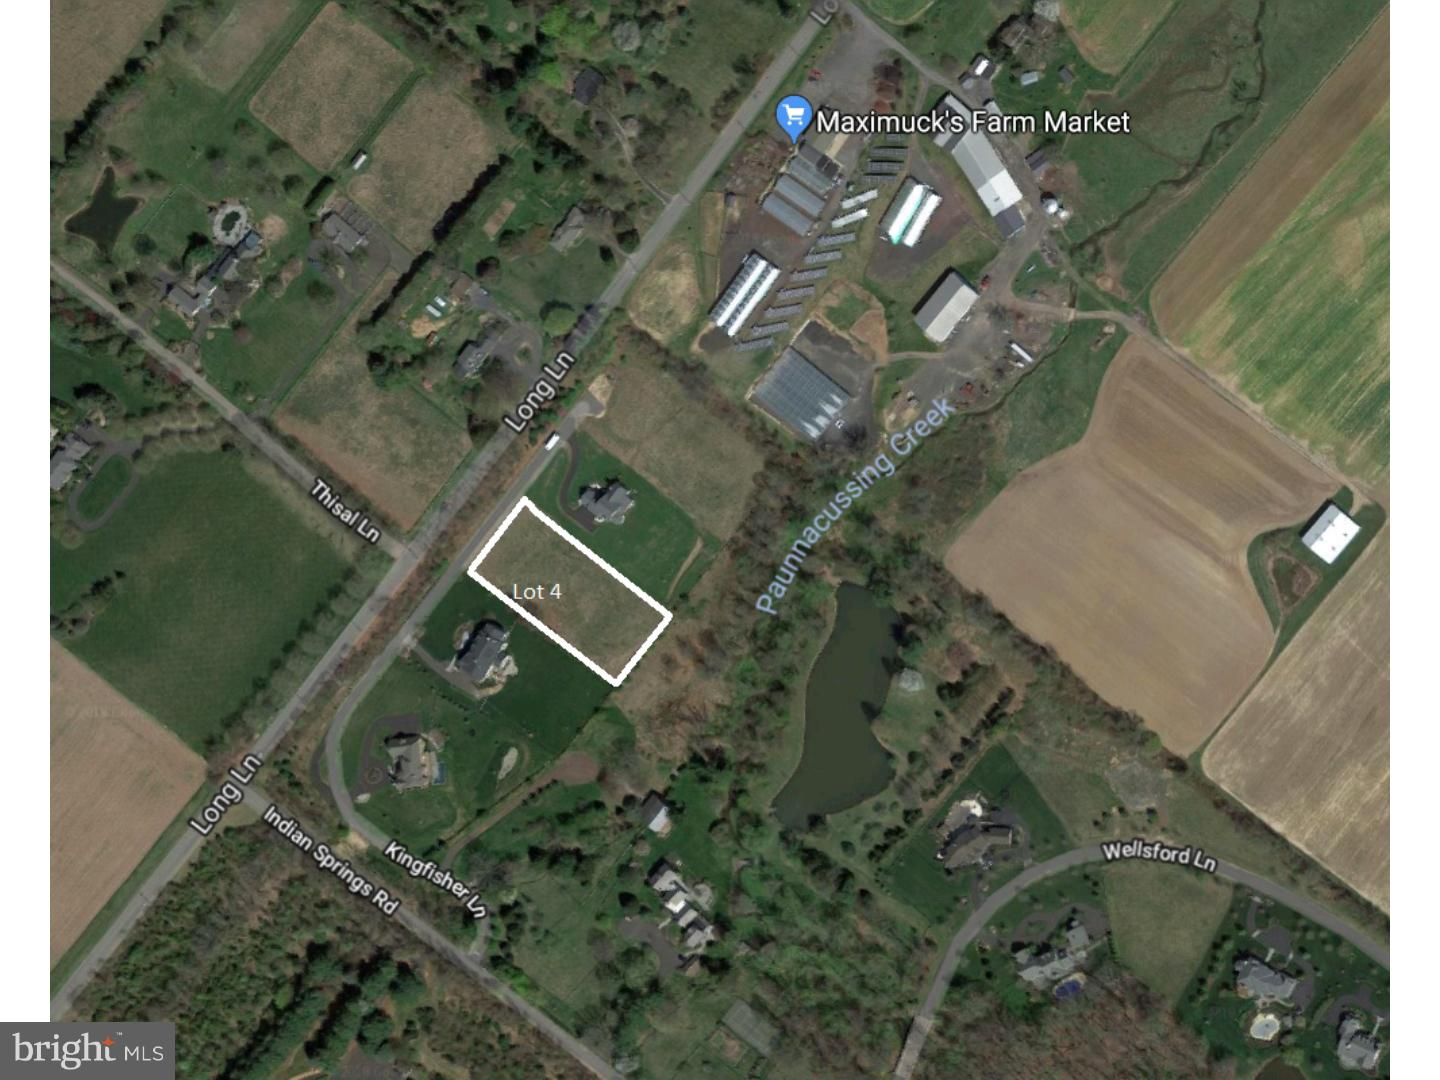 Land for Sale at Mechanicsville, Pennsylvania 18934 United States